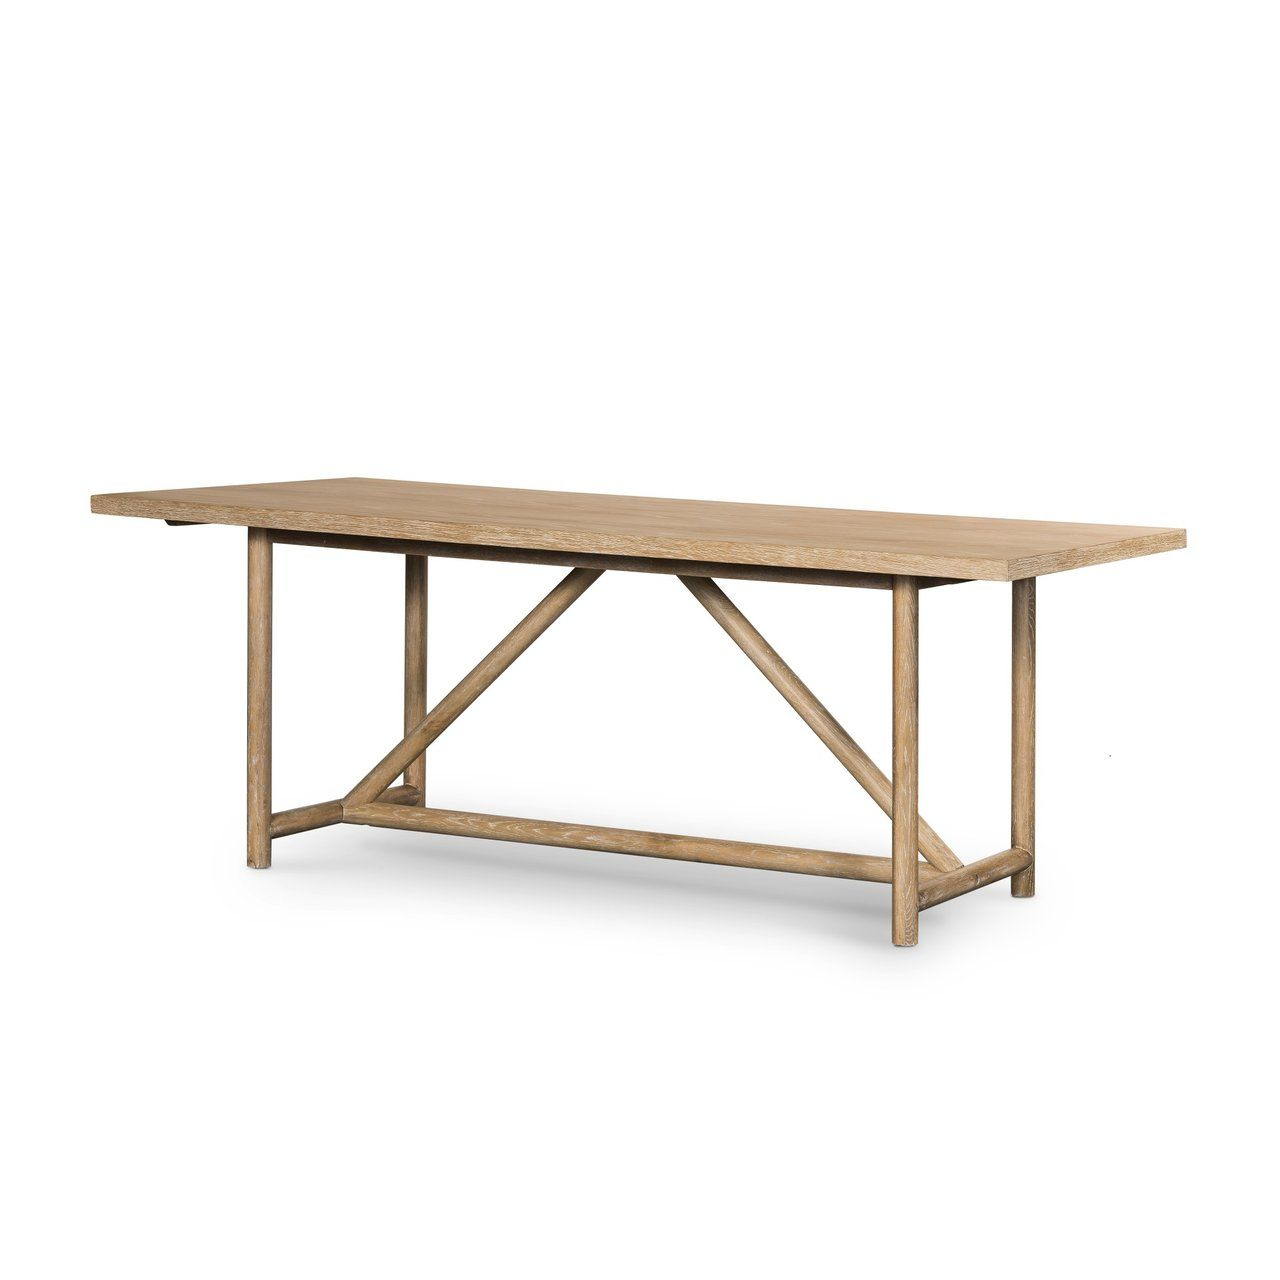 Ramsey Dining Table in 11  Dining table, Dining, White washed oak